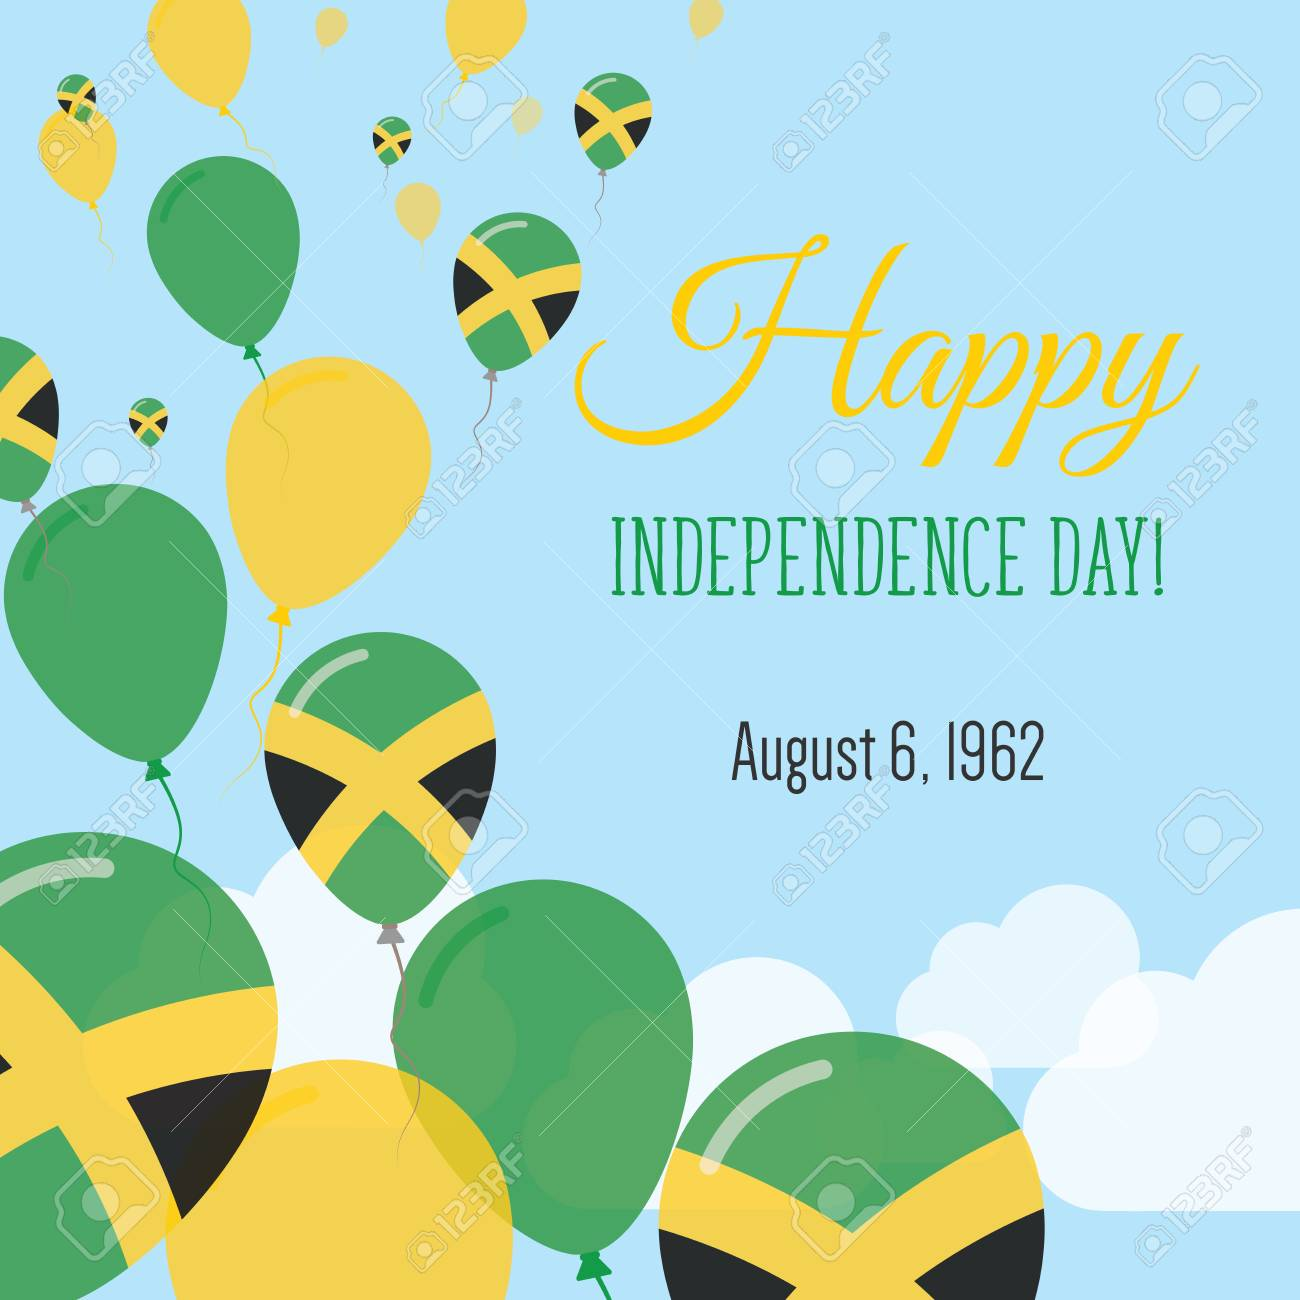 Independence Day Flat Greeting Card Jamaica Independence Day - Jamaica independence day